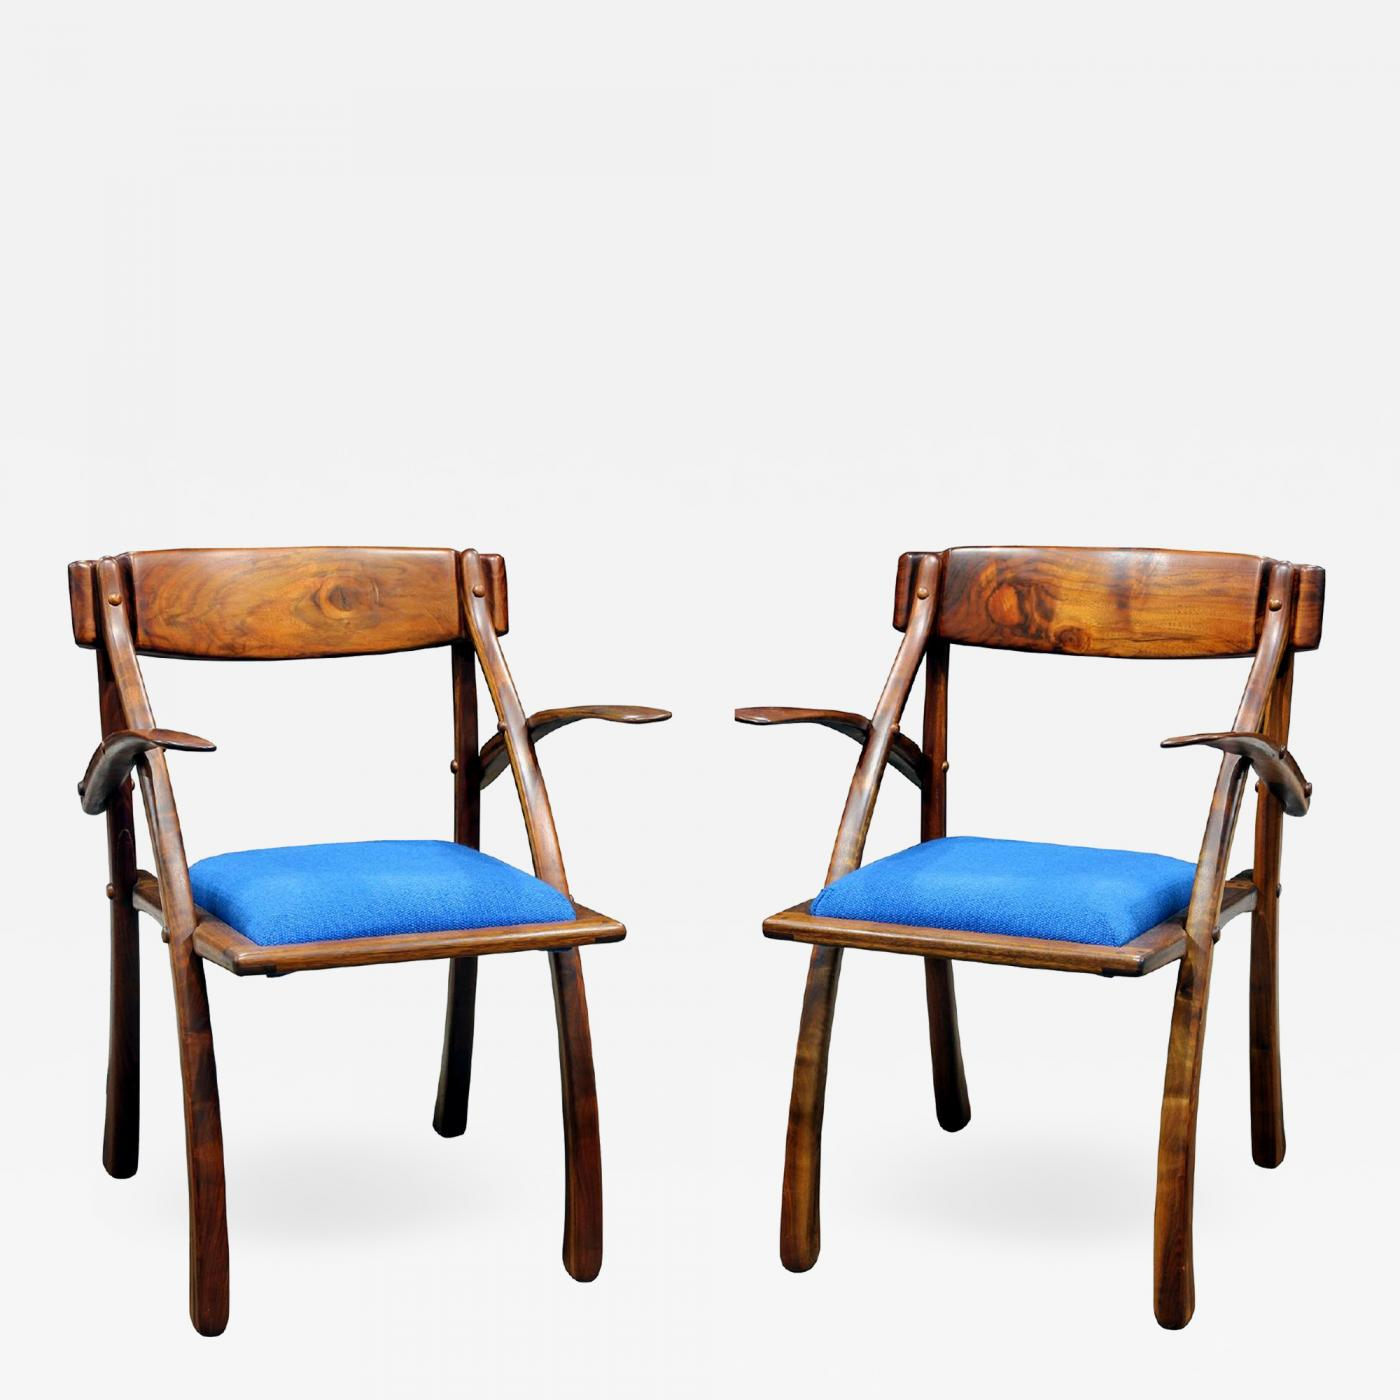 Wishbone Chairs Arthur Espenet Carpenter Rare Pair Of Wishbone Chairs By Arthur Espenet Carpenter